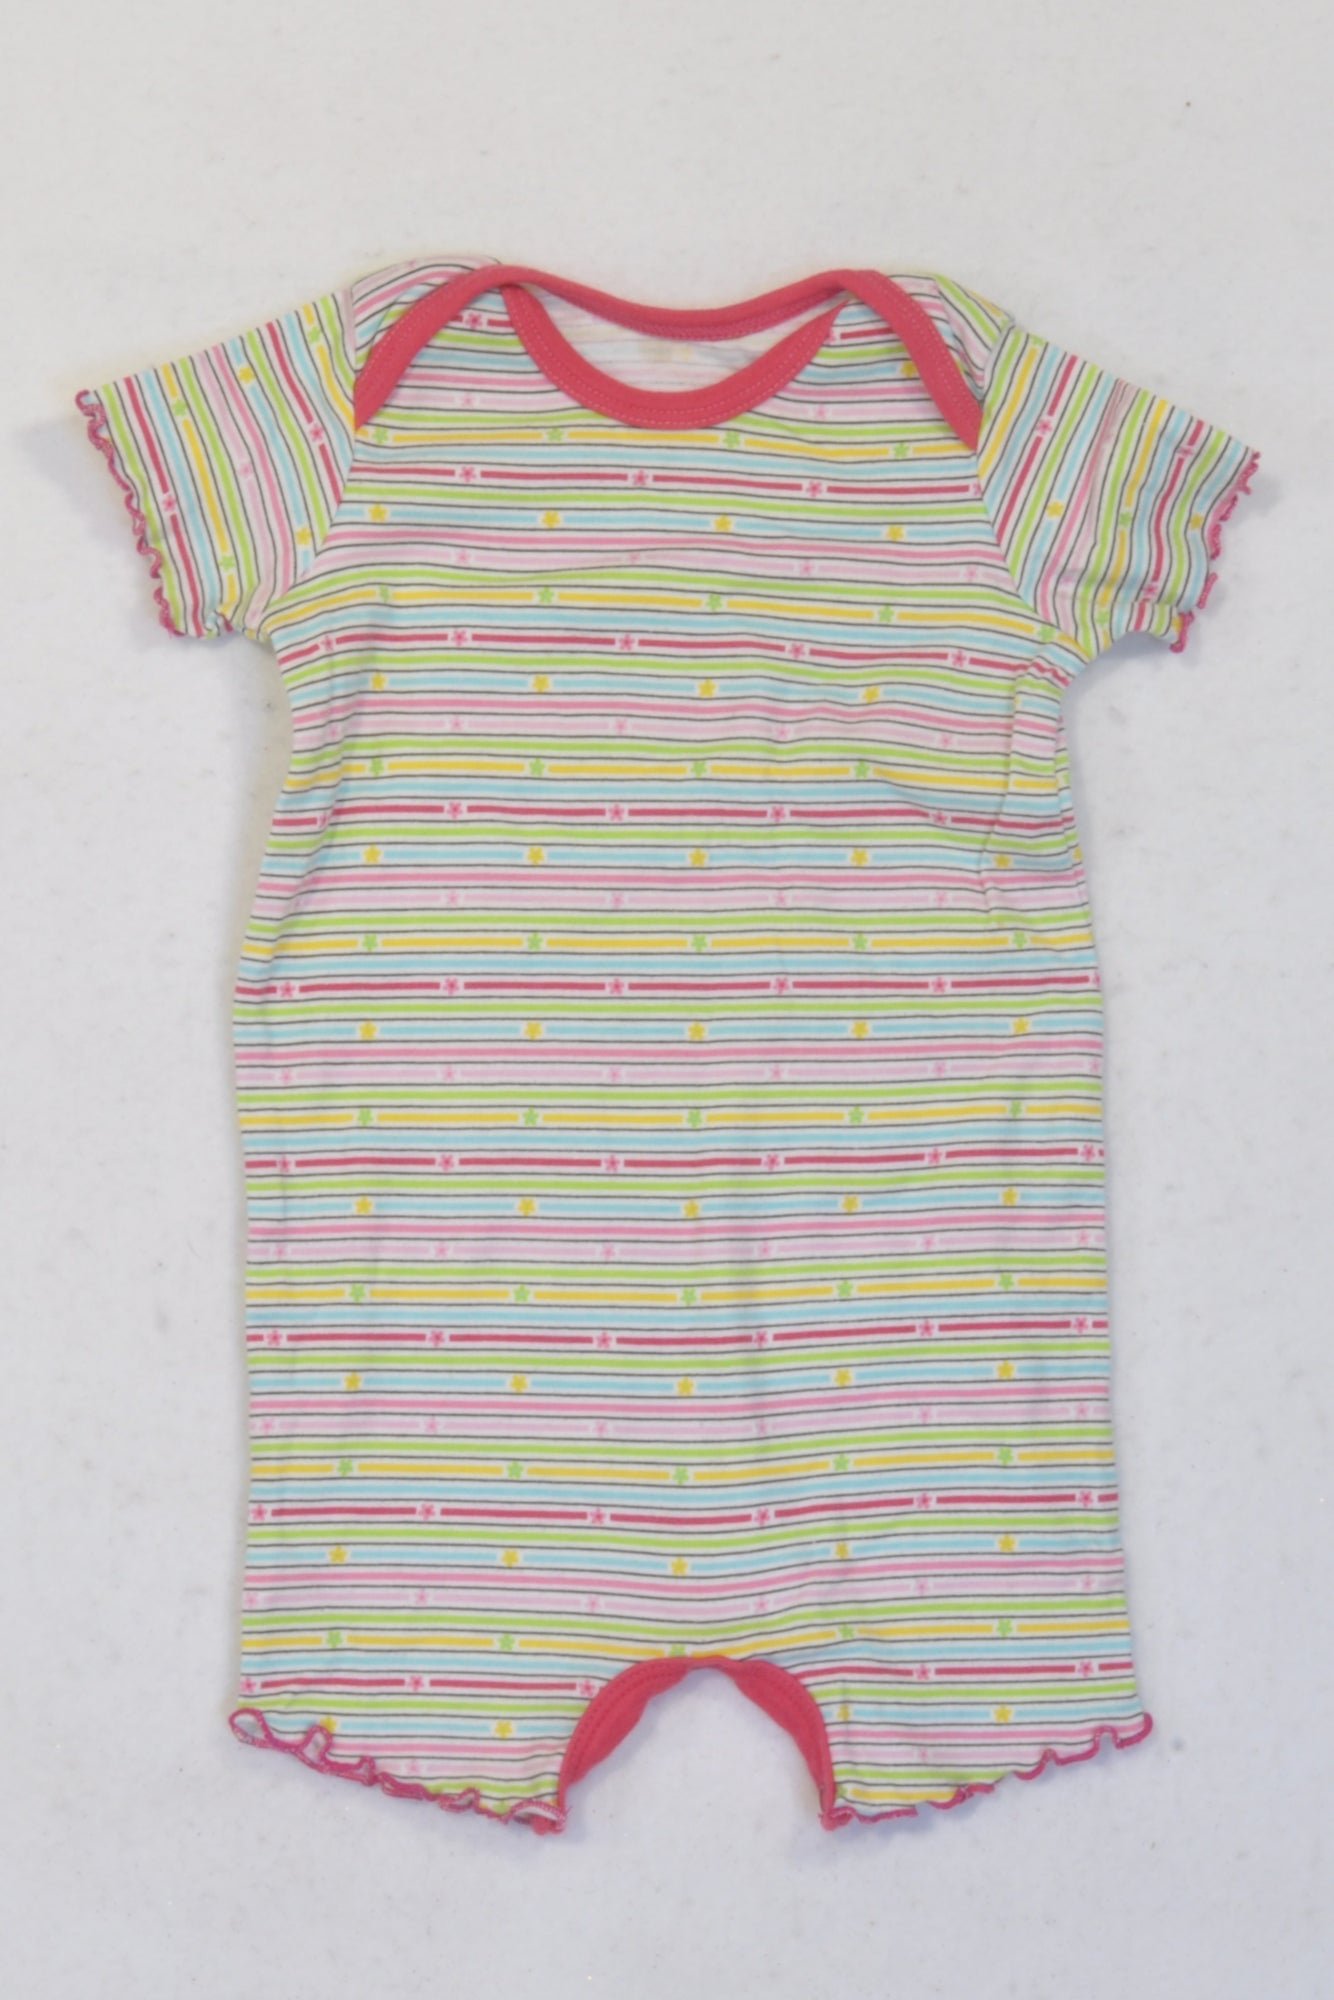 Woolworths Multi-coloured Thin Stripe Romper Girls 3-6 months